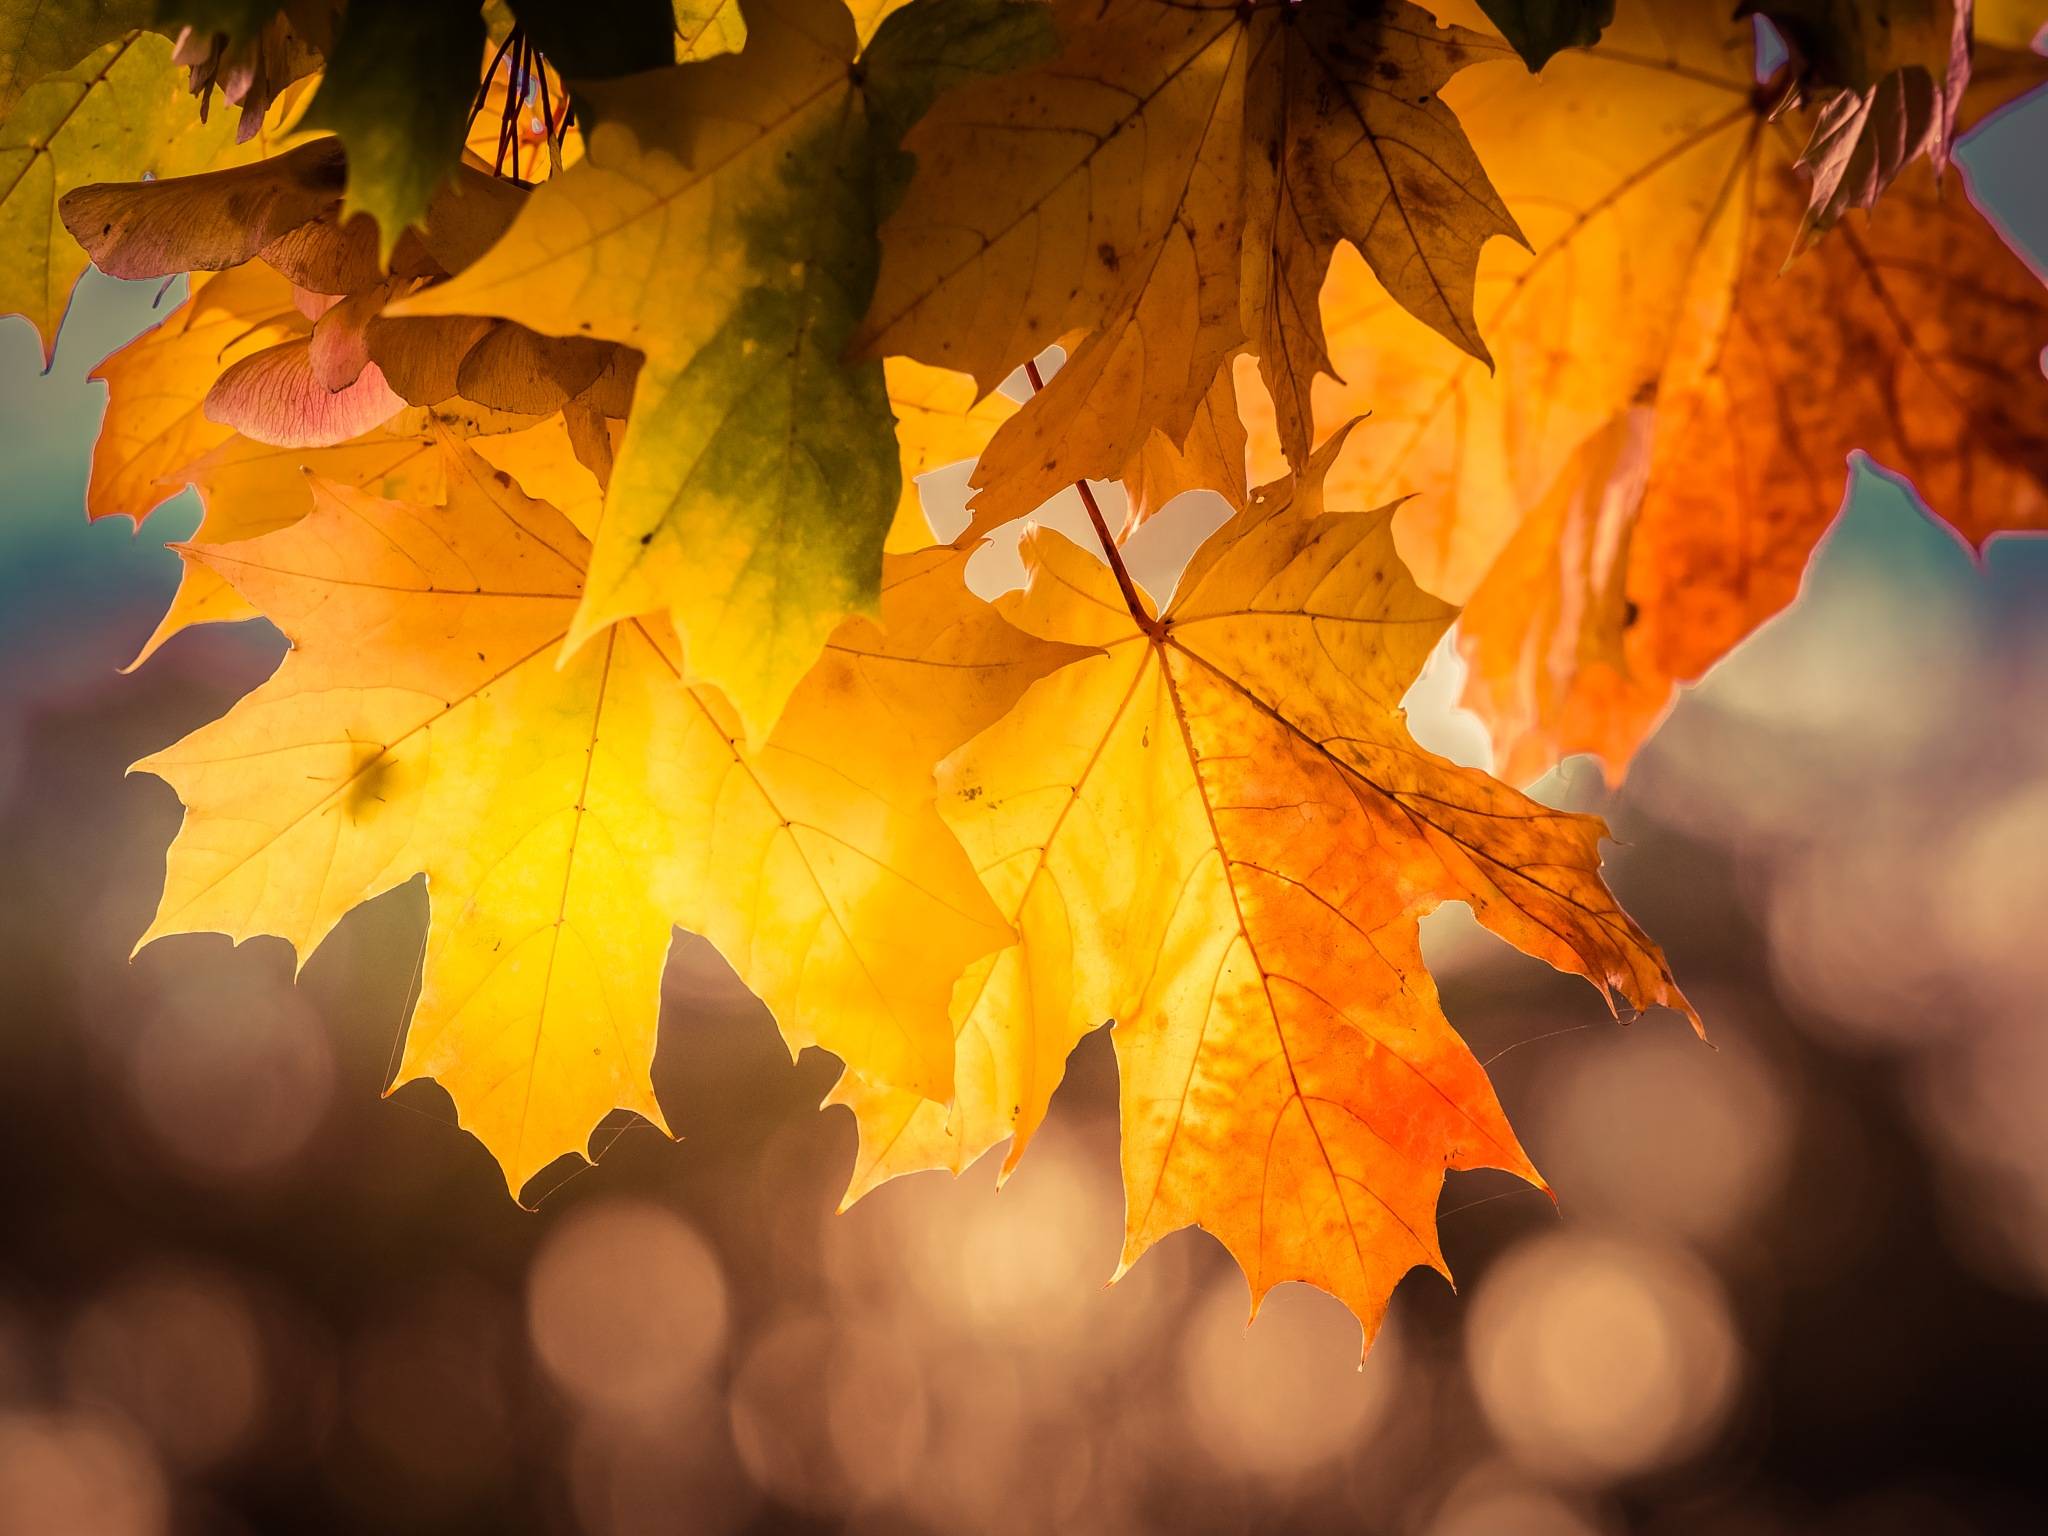 A touch of Autumn by Sarah Walters